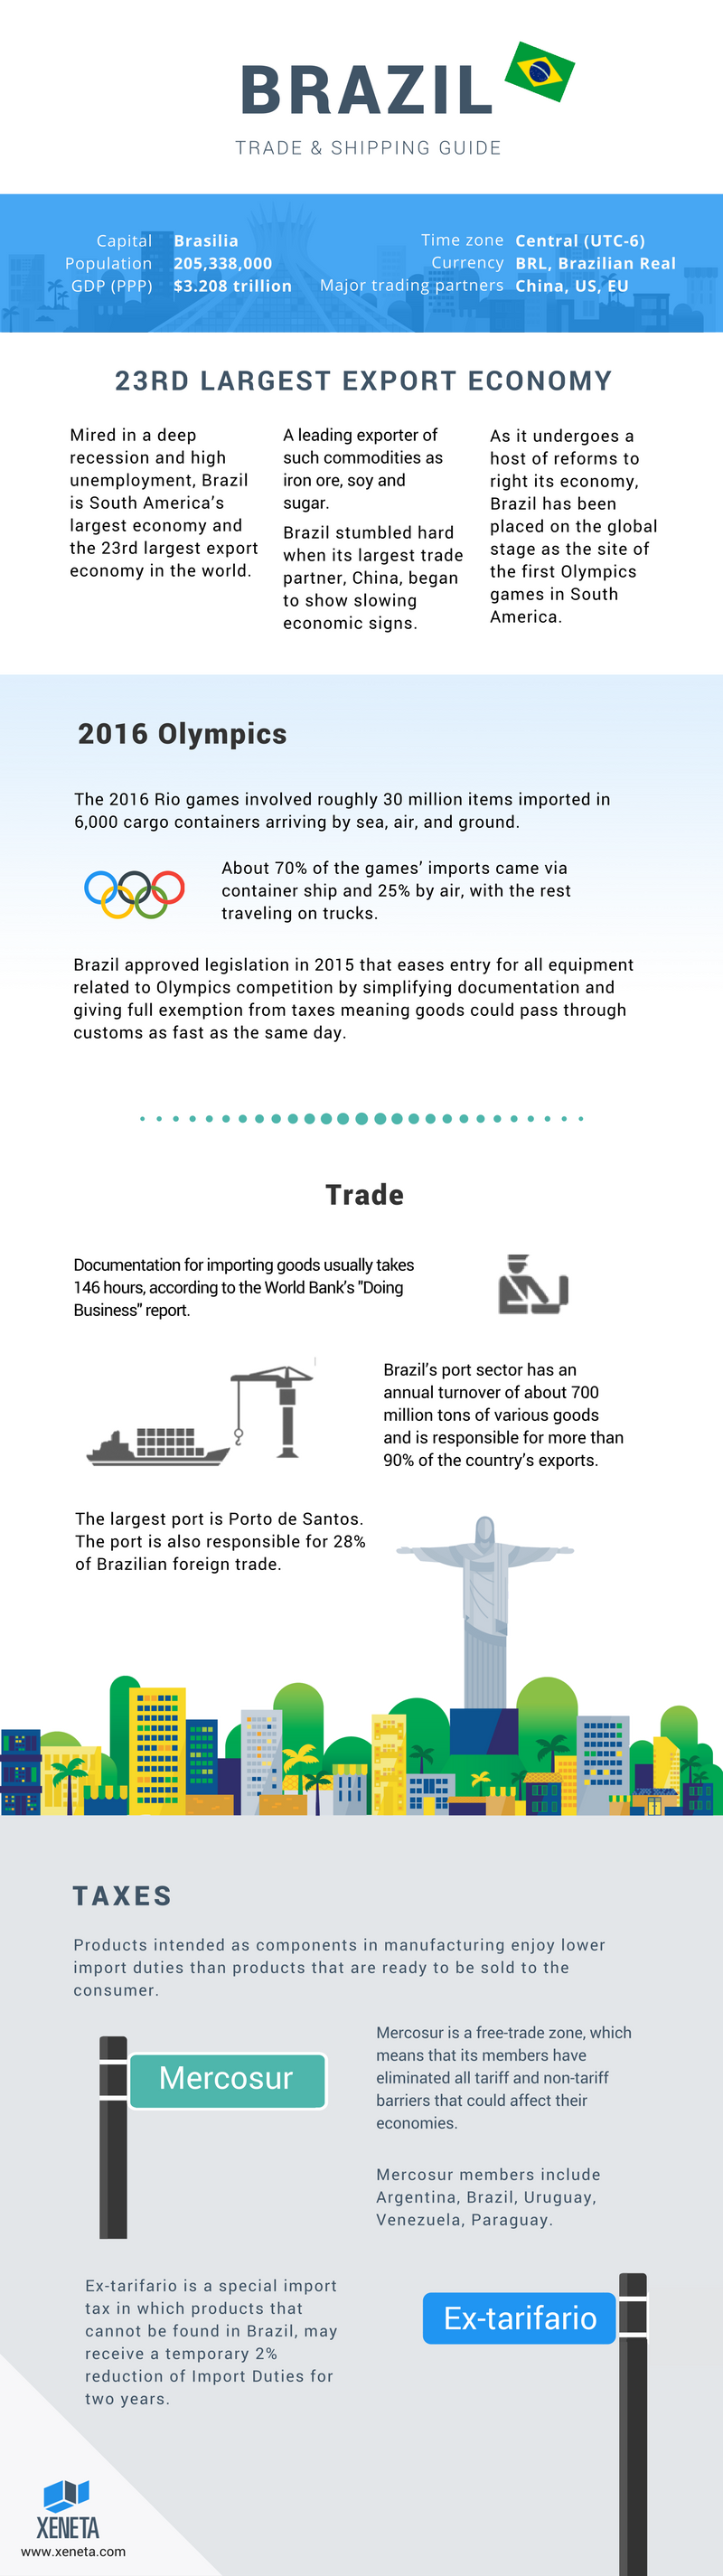 BRAZIL trade and shipping guide